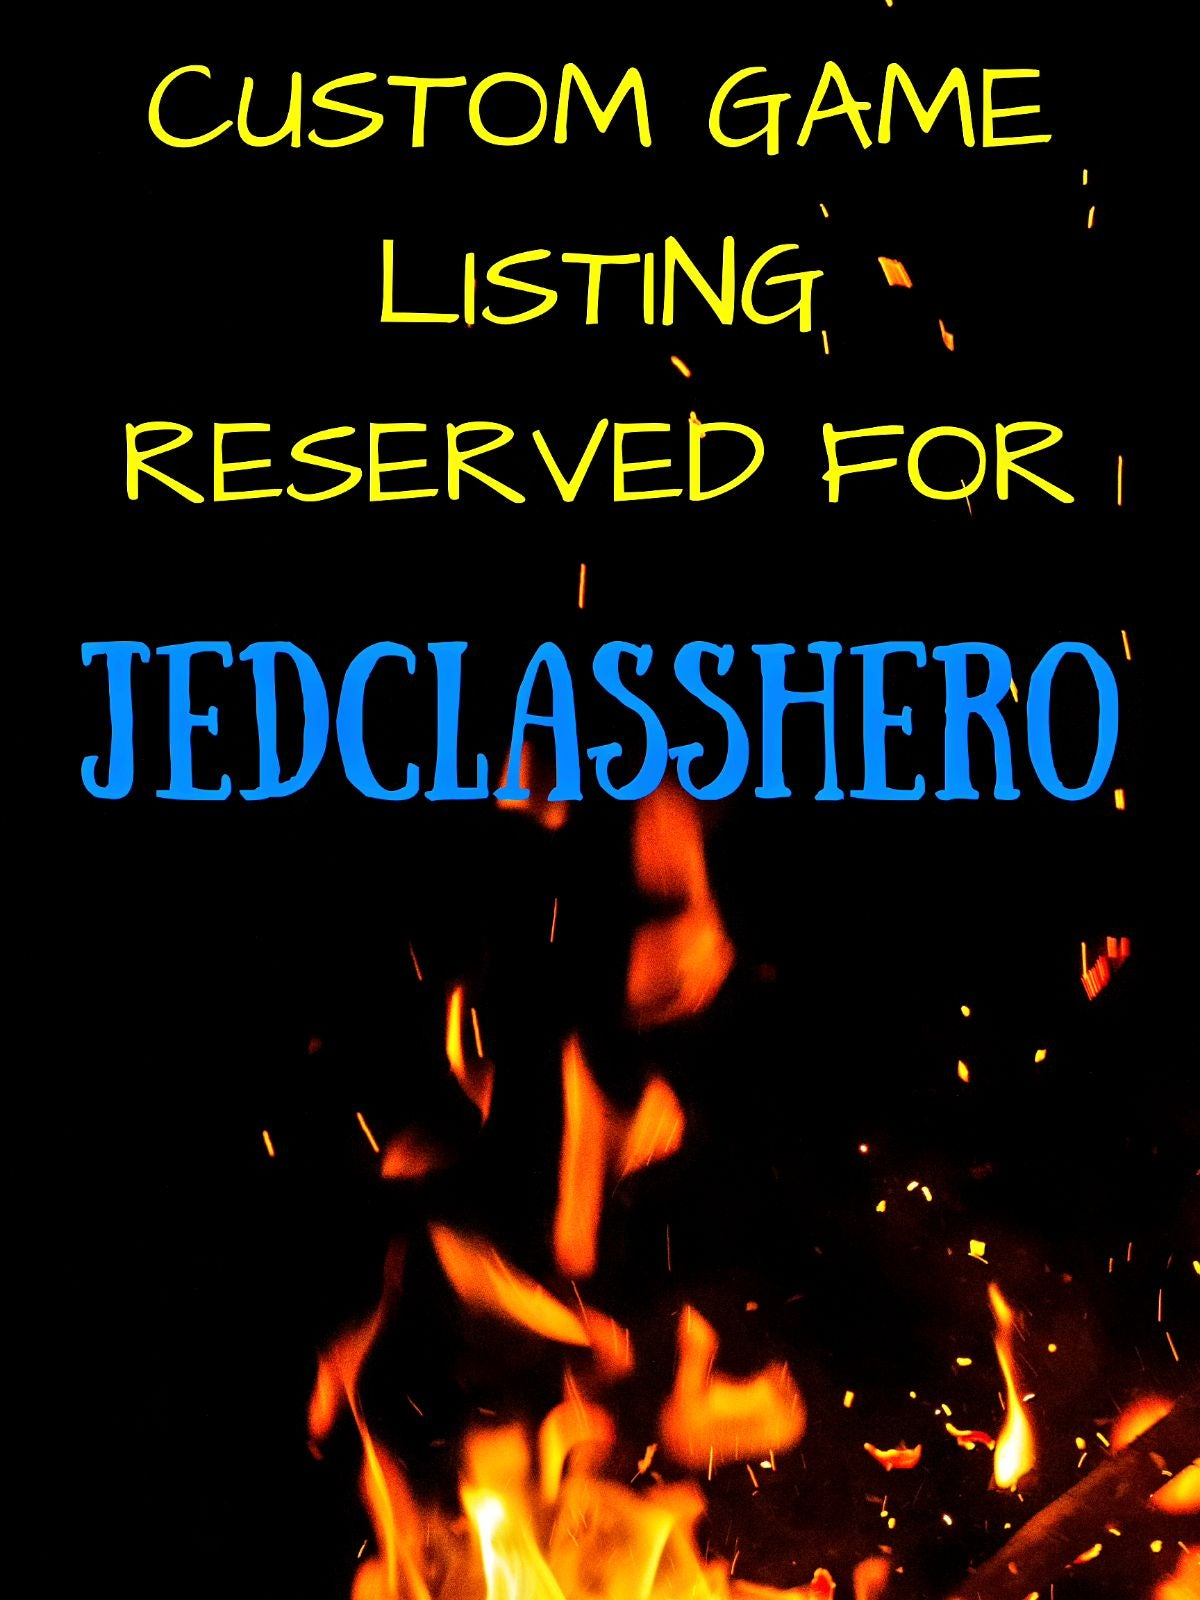 RESERVED FOR JEDCLASSHERO